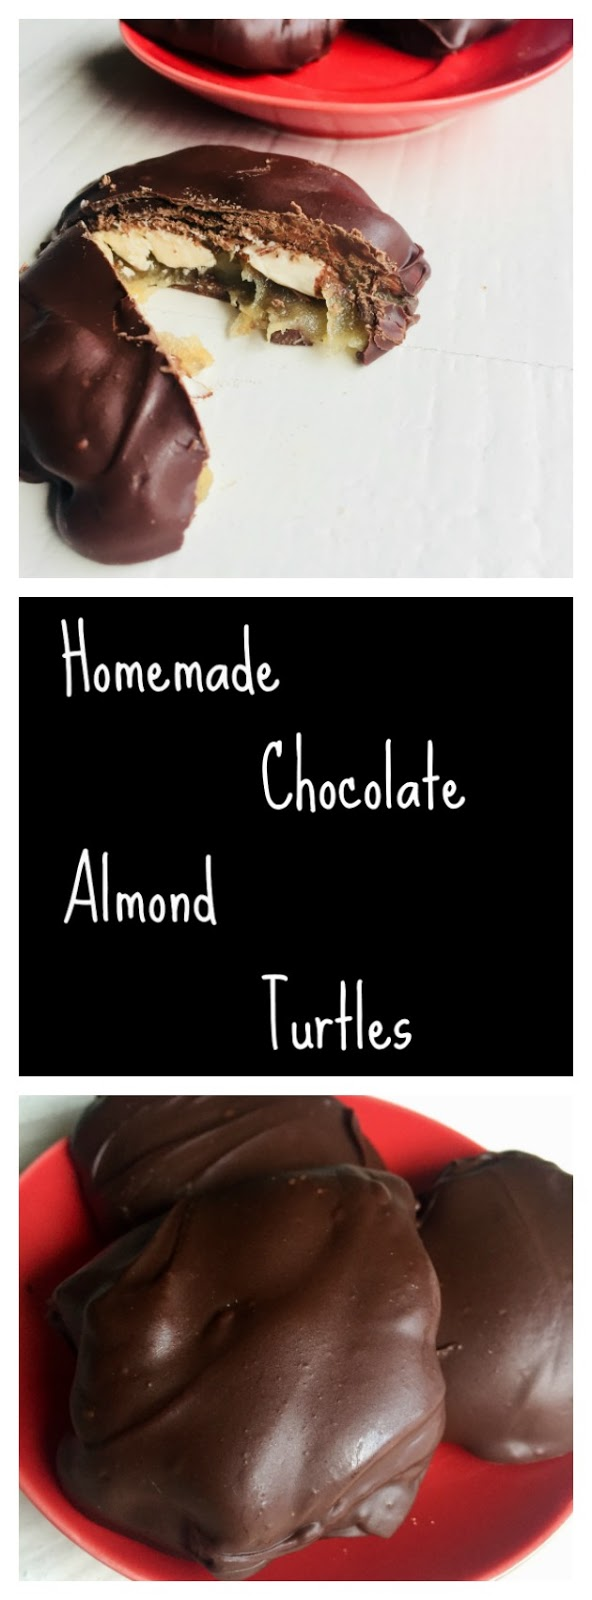 Homemade Chocolate Almond Turtles